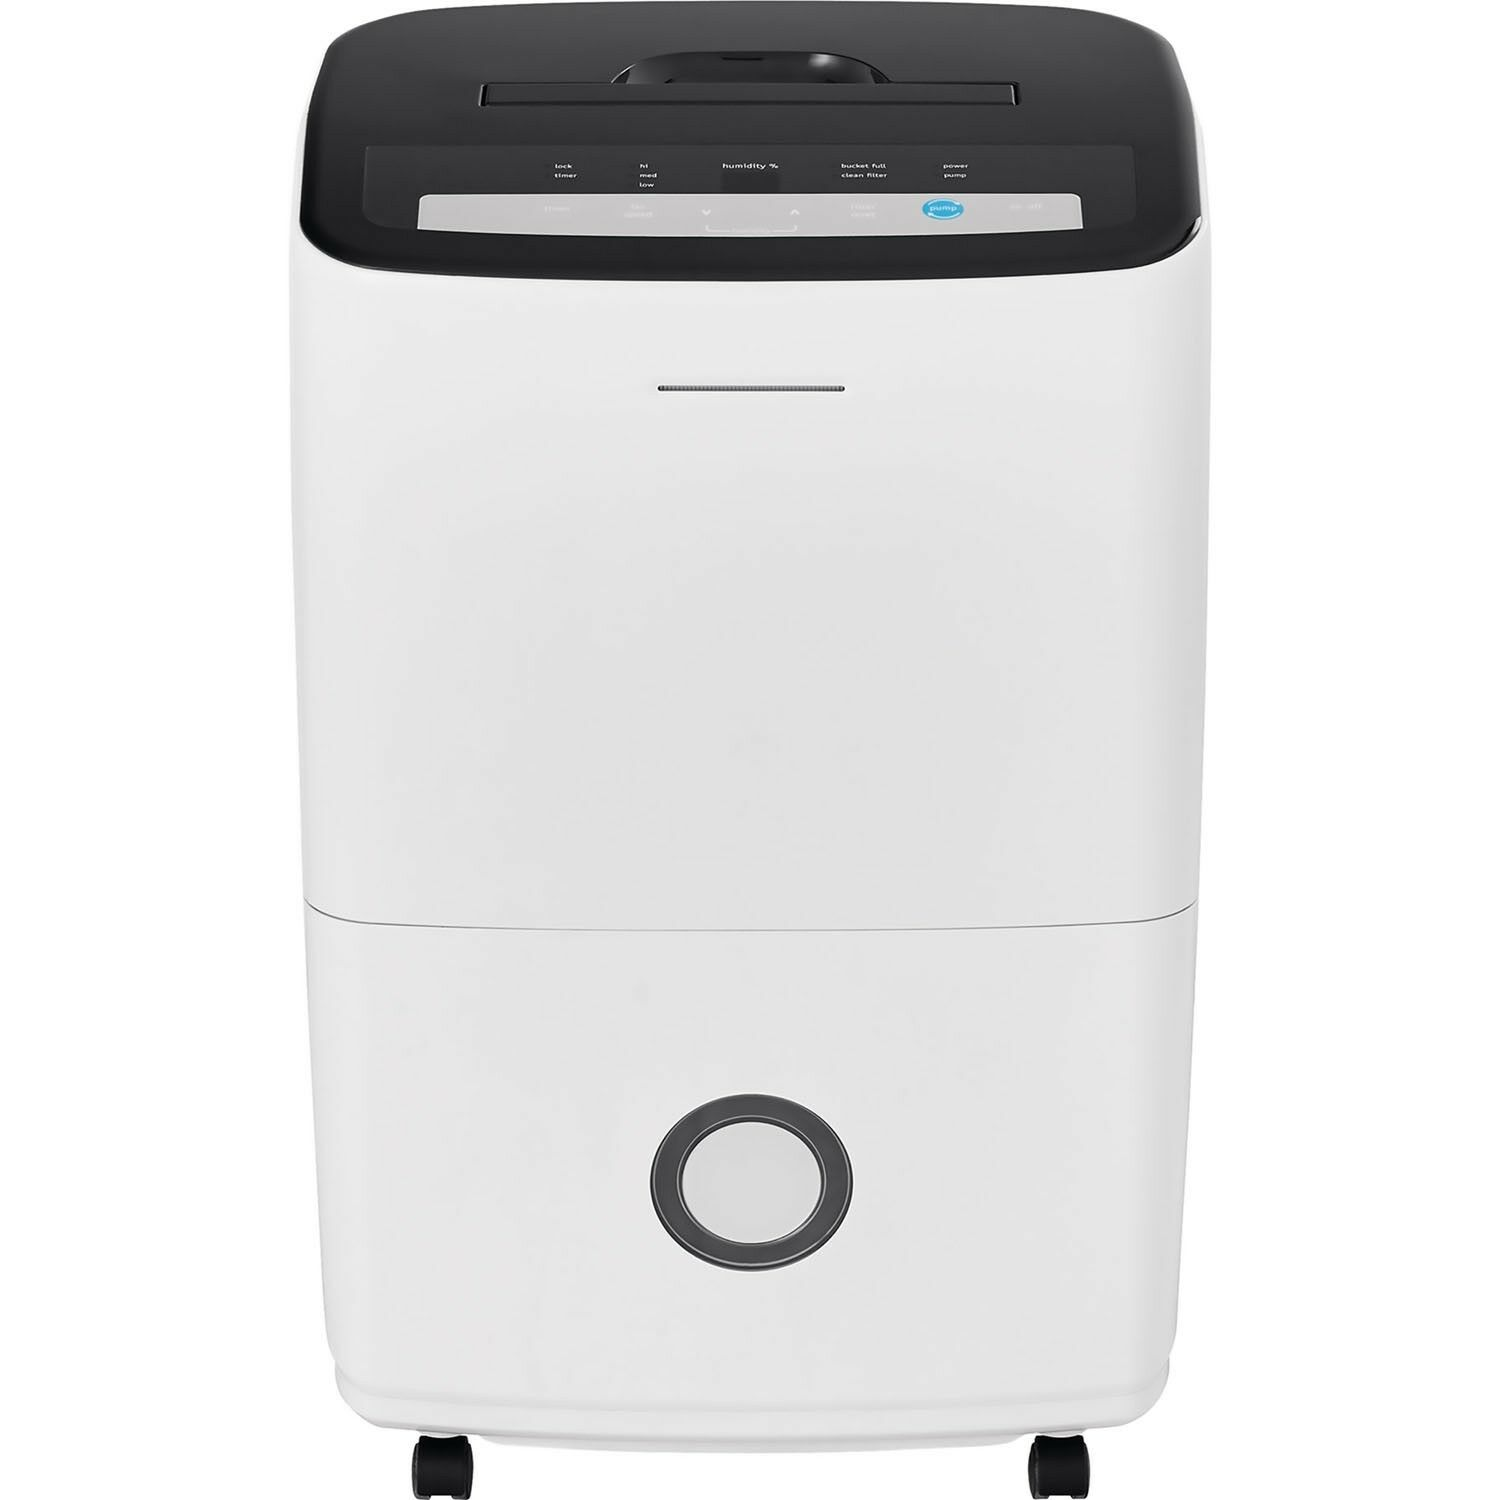 Frigidaire 70 Pint Dehumidifier with Built-in Pump, Low Temp